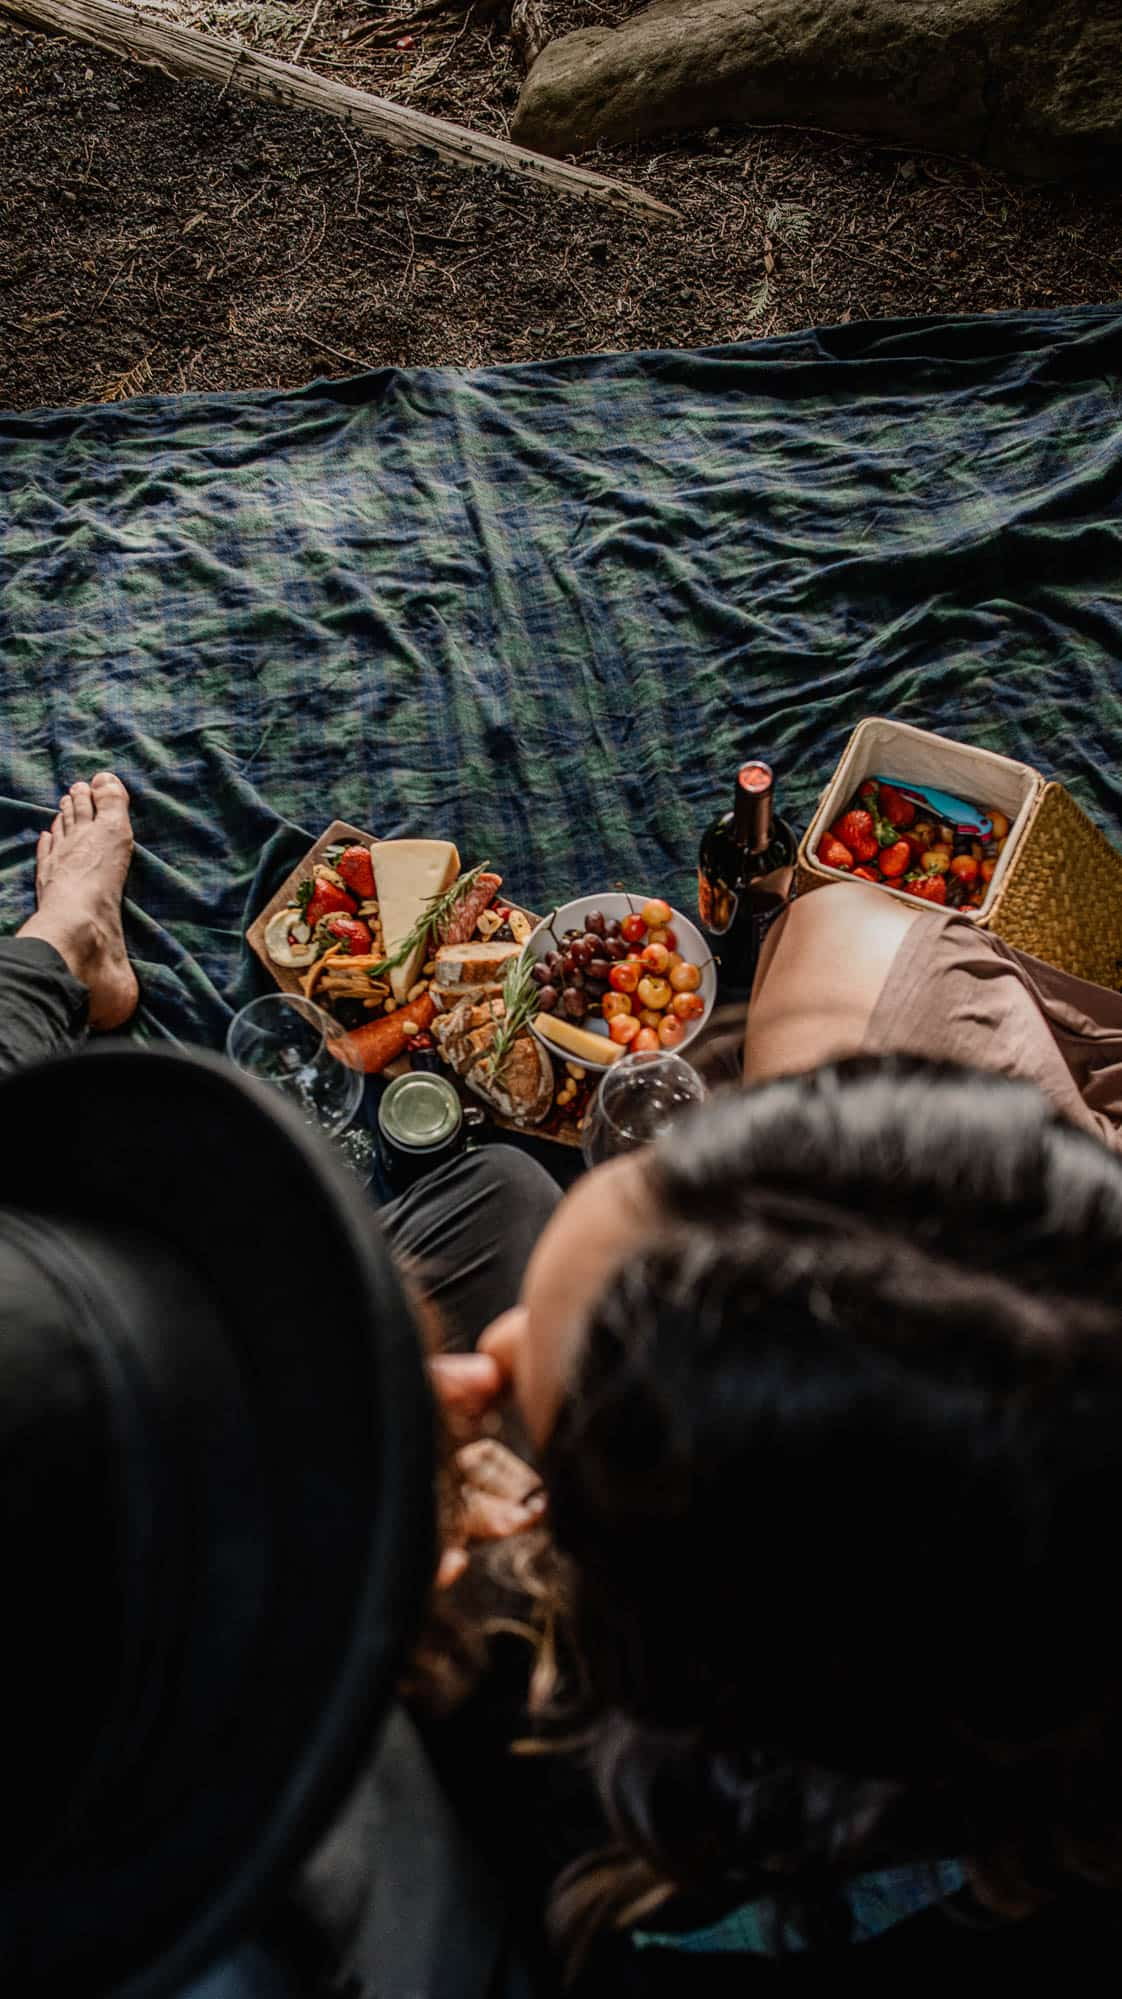 couple celebrating after their wedding day with a romantic picnic